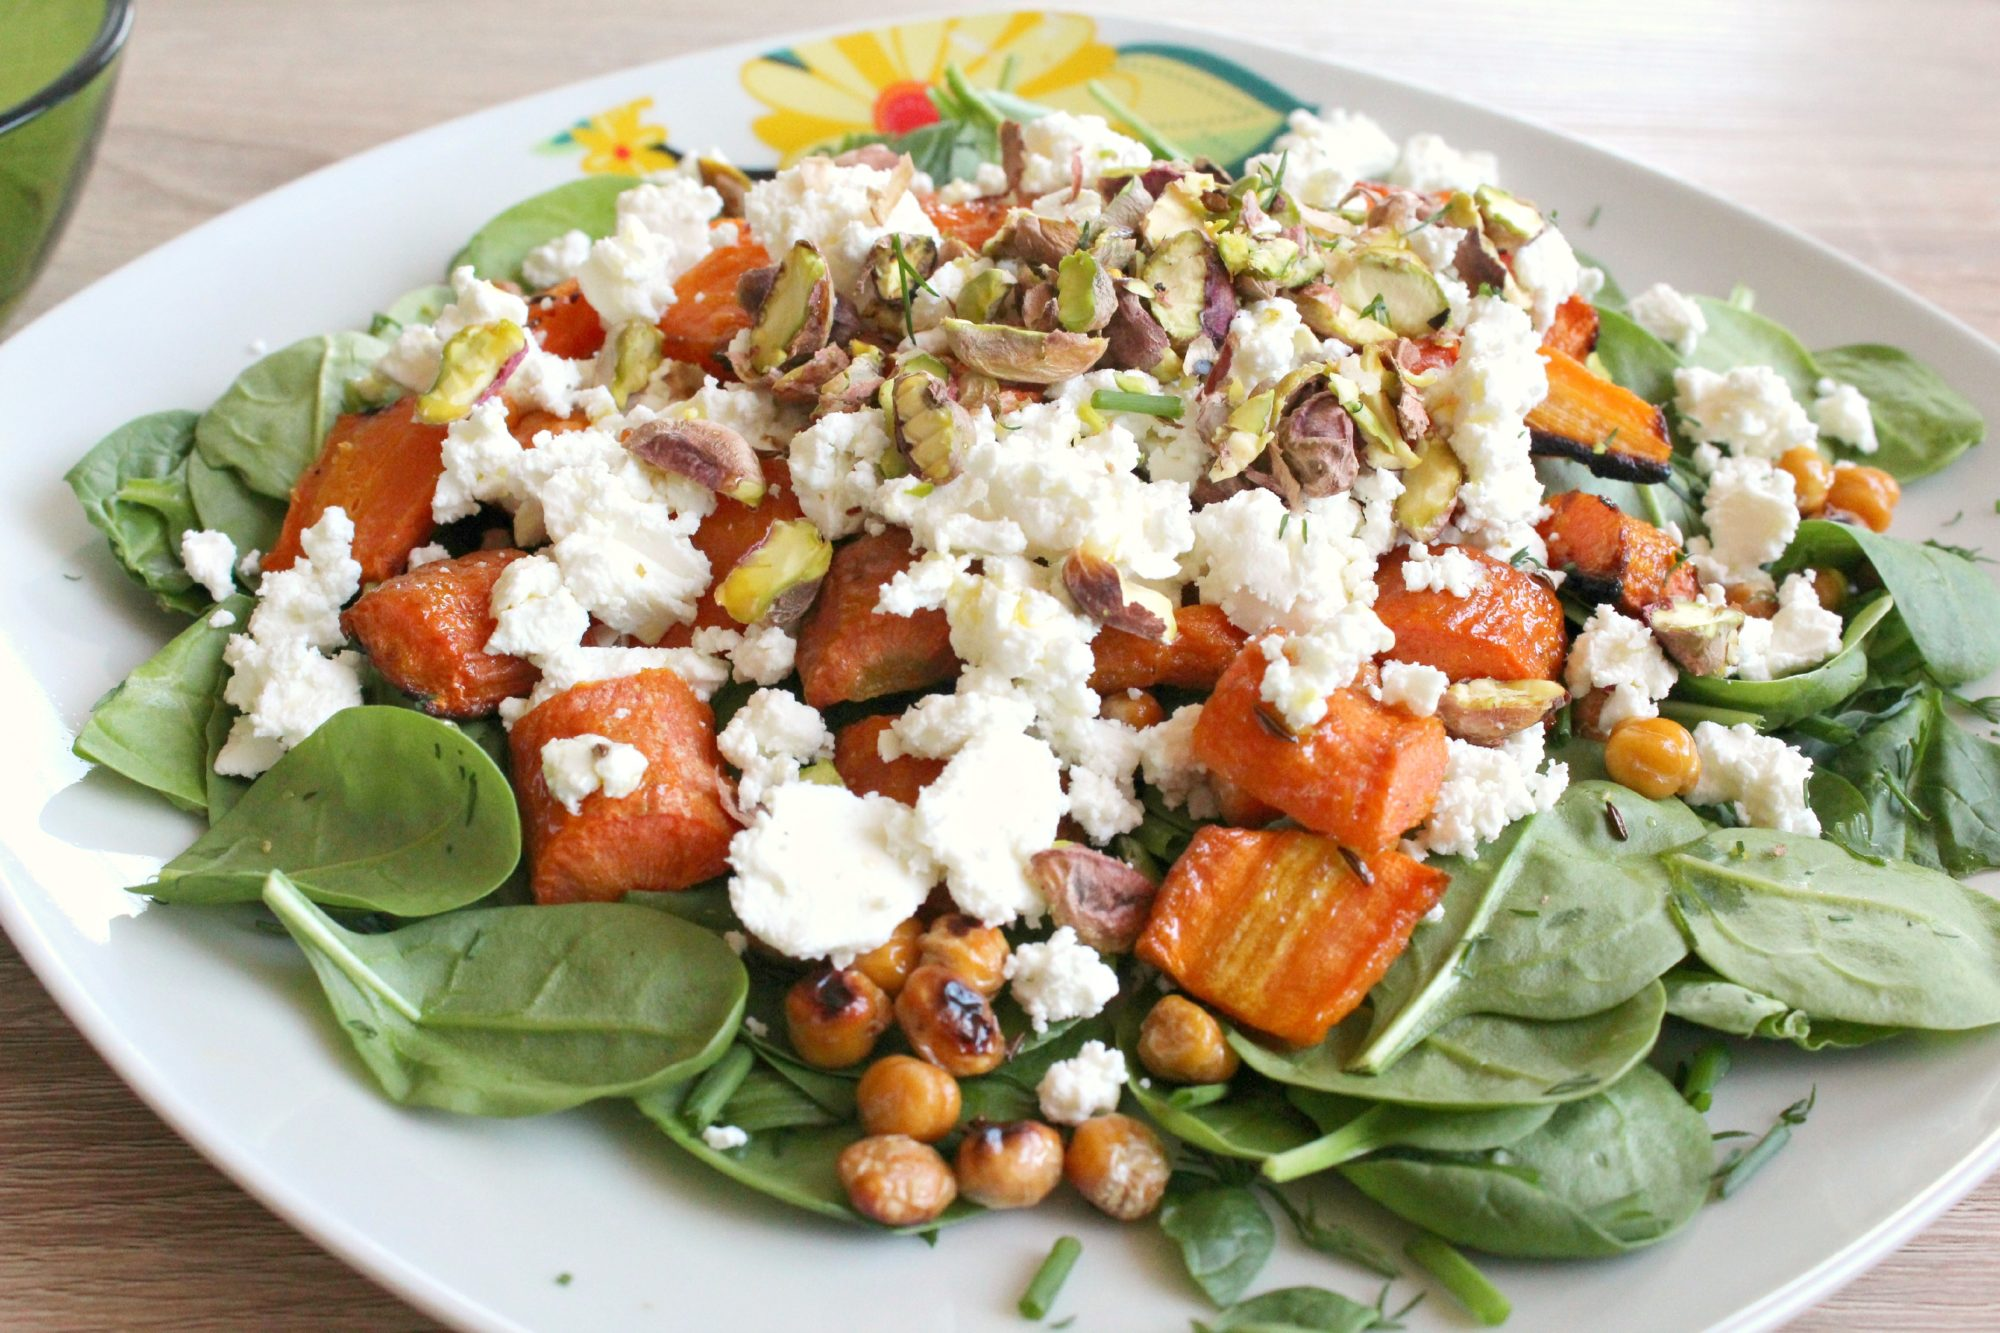 Baby spinach salad with roasted carrots